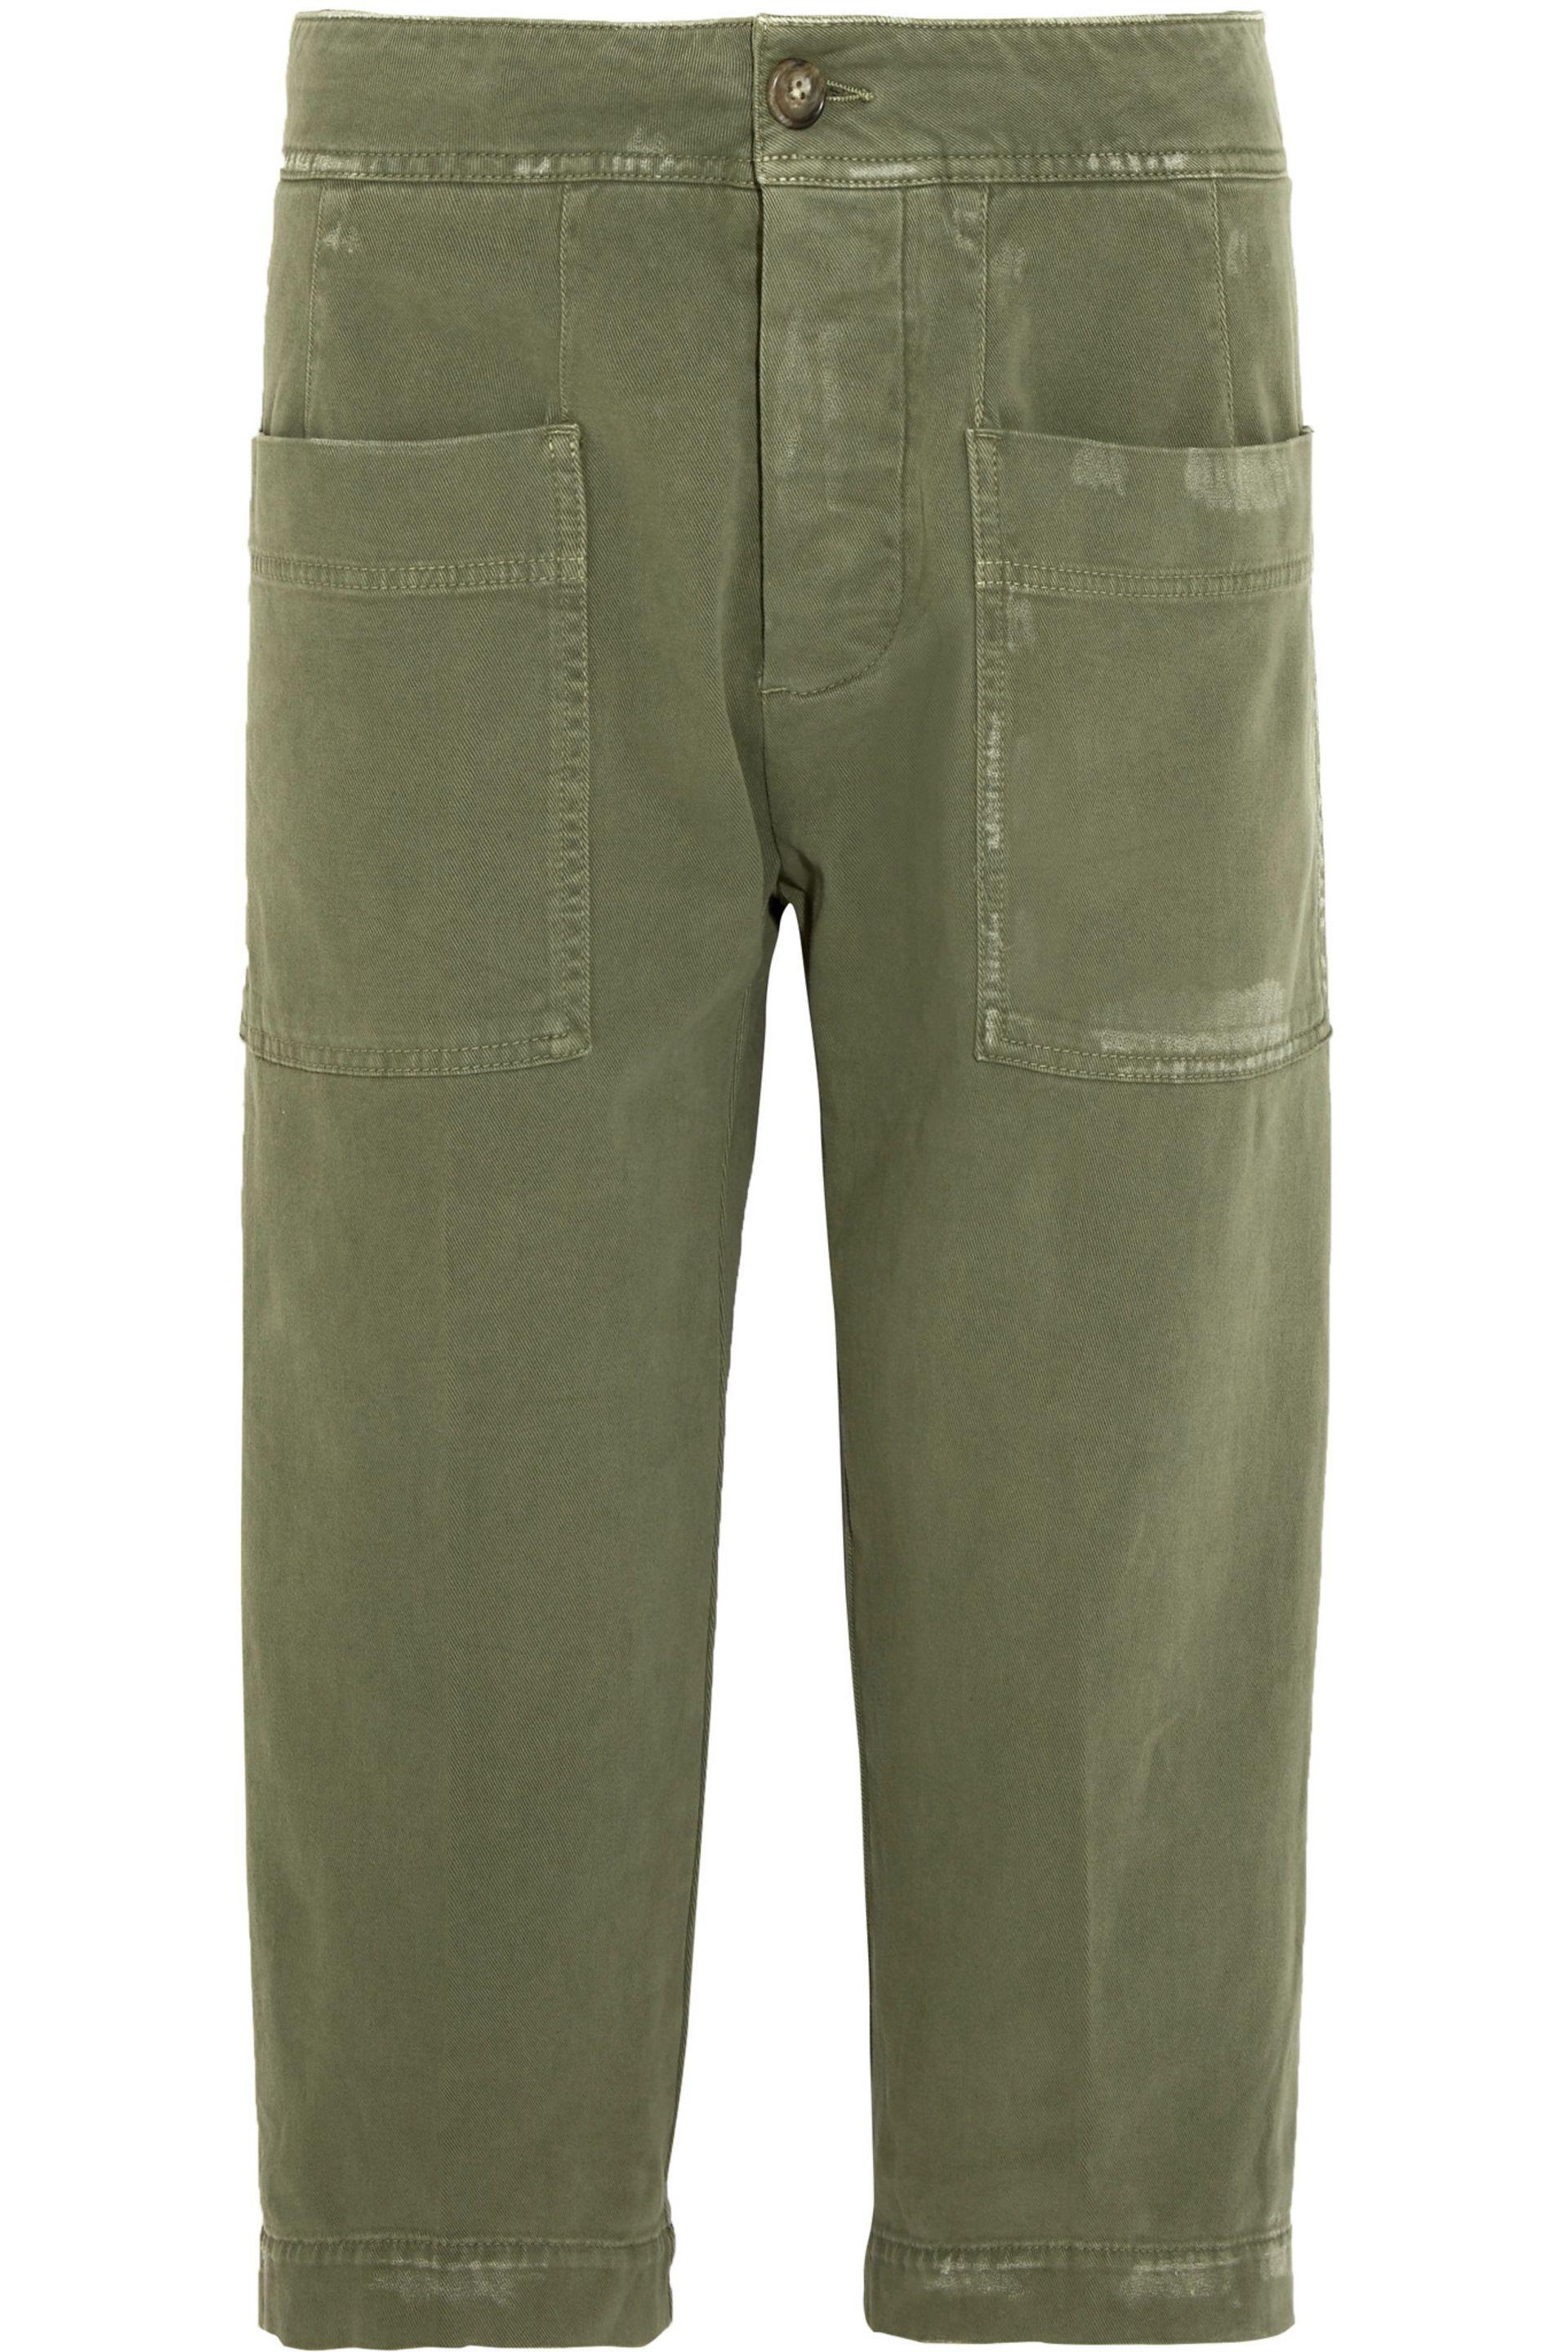 8416bb80 james-perse-Army-green-Cropped-Stretch-cotton-Twill-Pants.jpeg